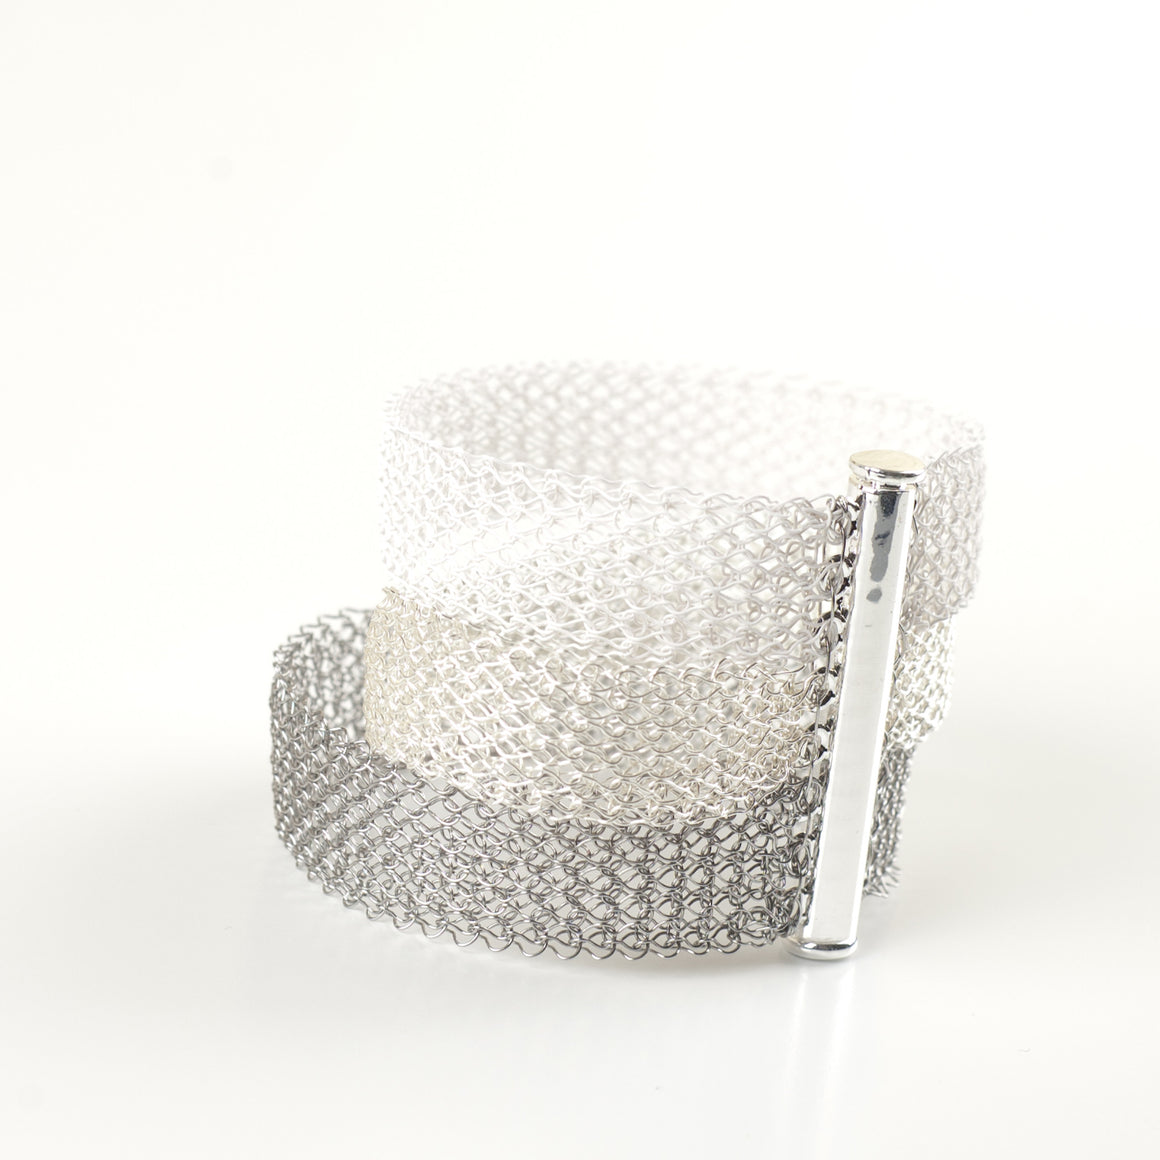 Ombre Bracelet, Layered Bracelet , ultra white, silver & steel - Yooladesign